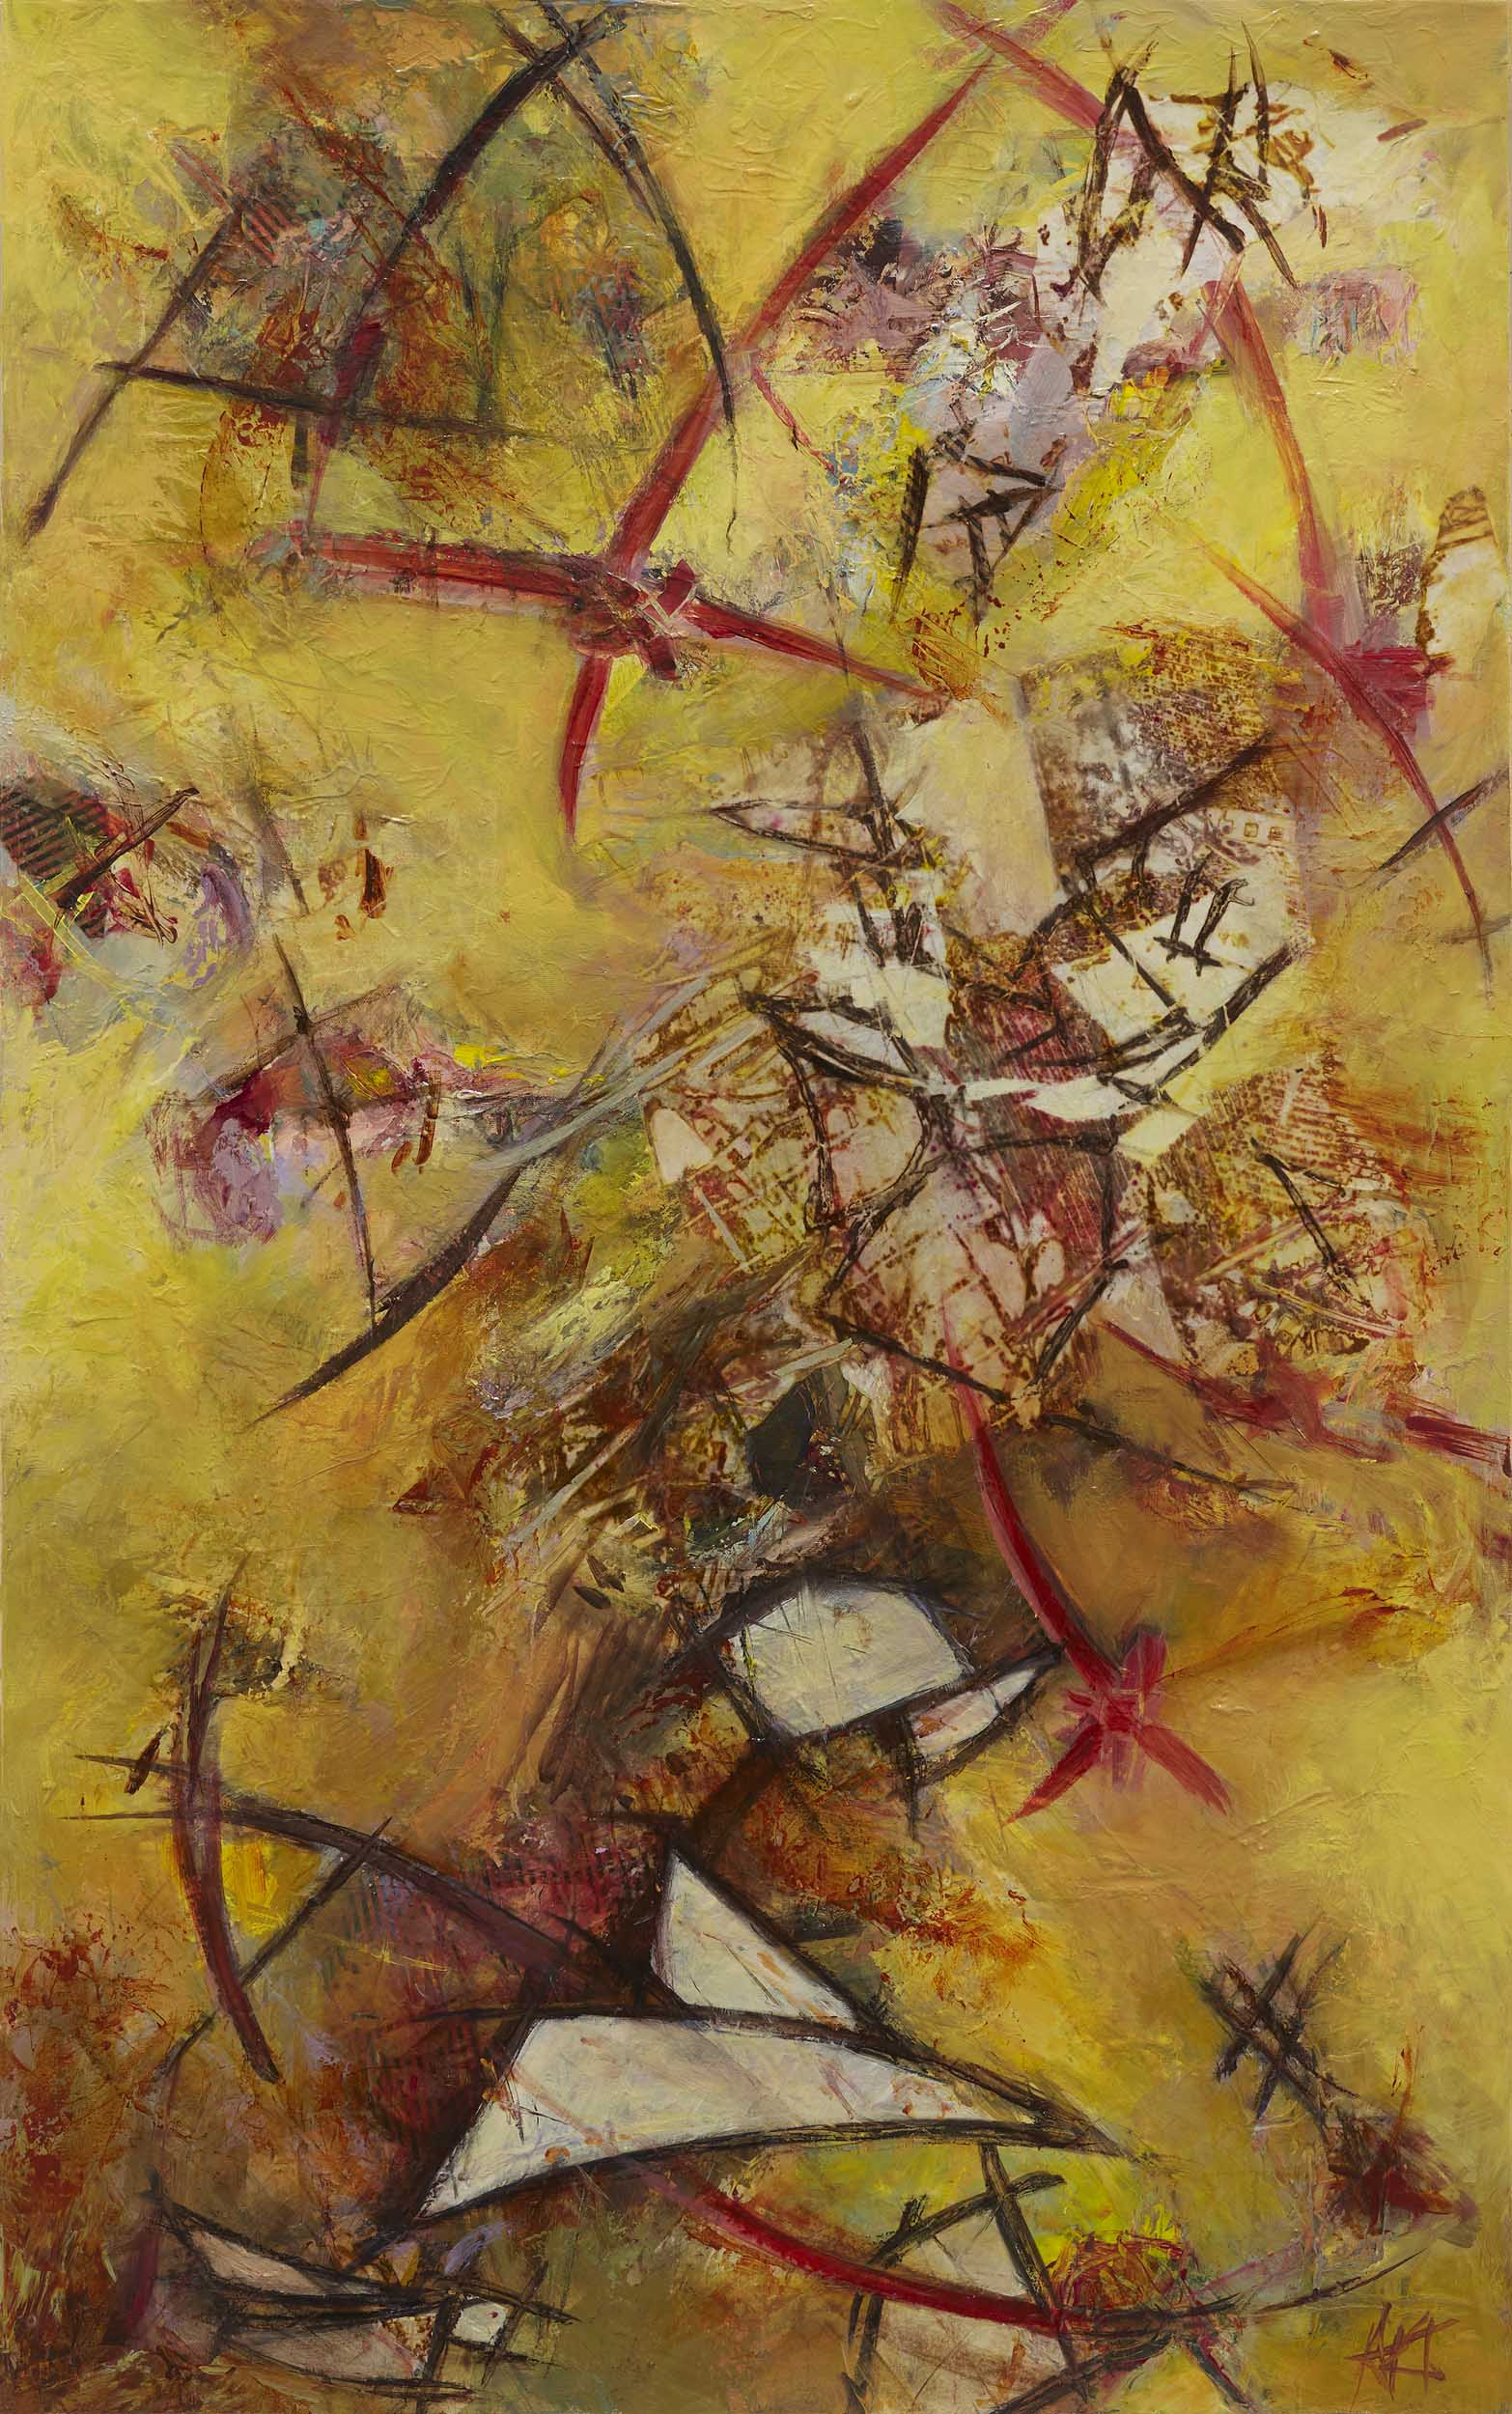 Catalyst by abstract artist, Amy Tillotson, Saint Paul, Minnesota, St. Paul Artist, Minnesota Artist, Abstract Artist from Saint Paul, Minnesota, Minnesota artist